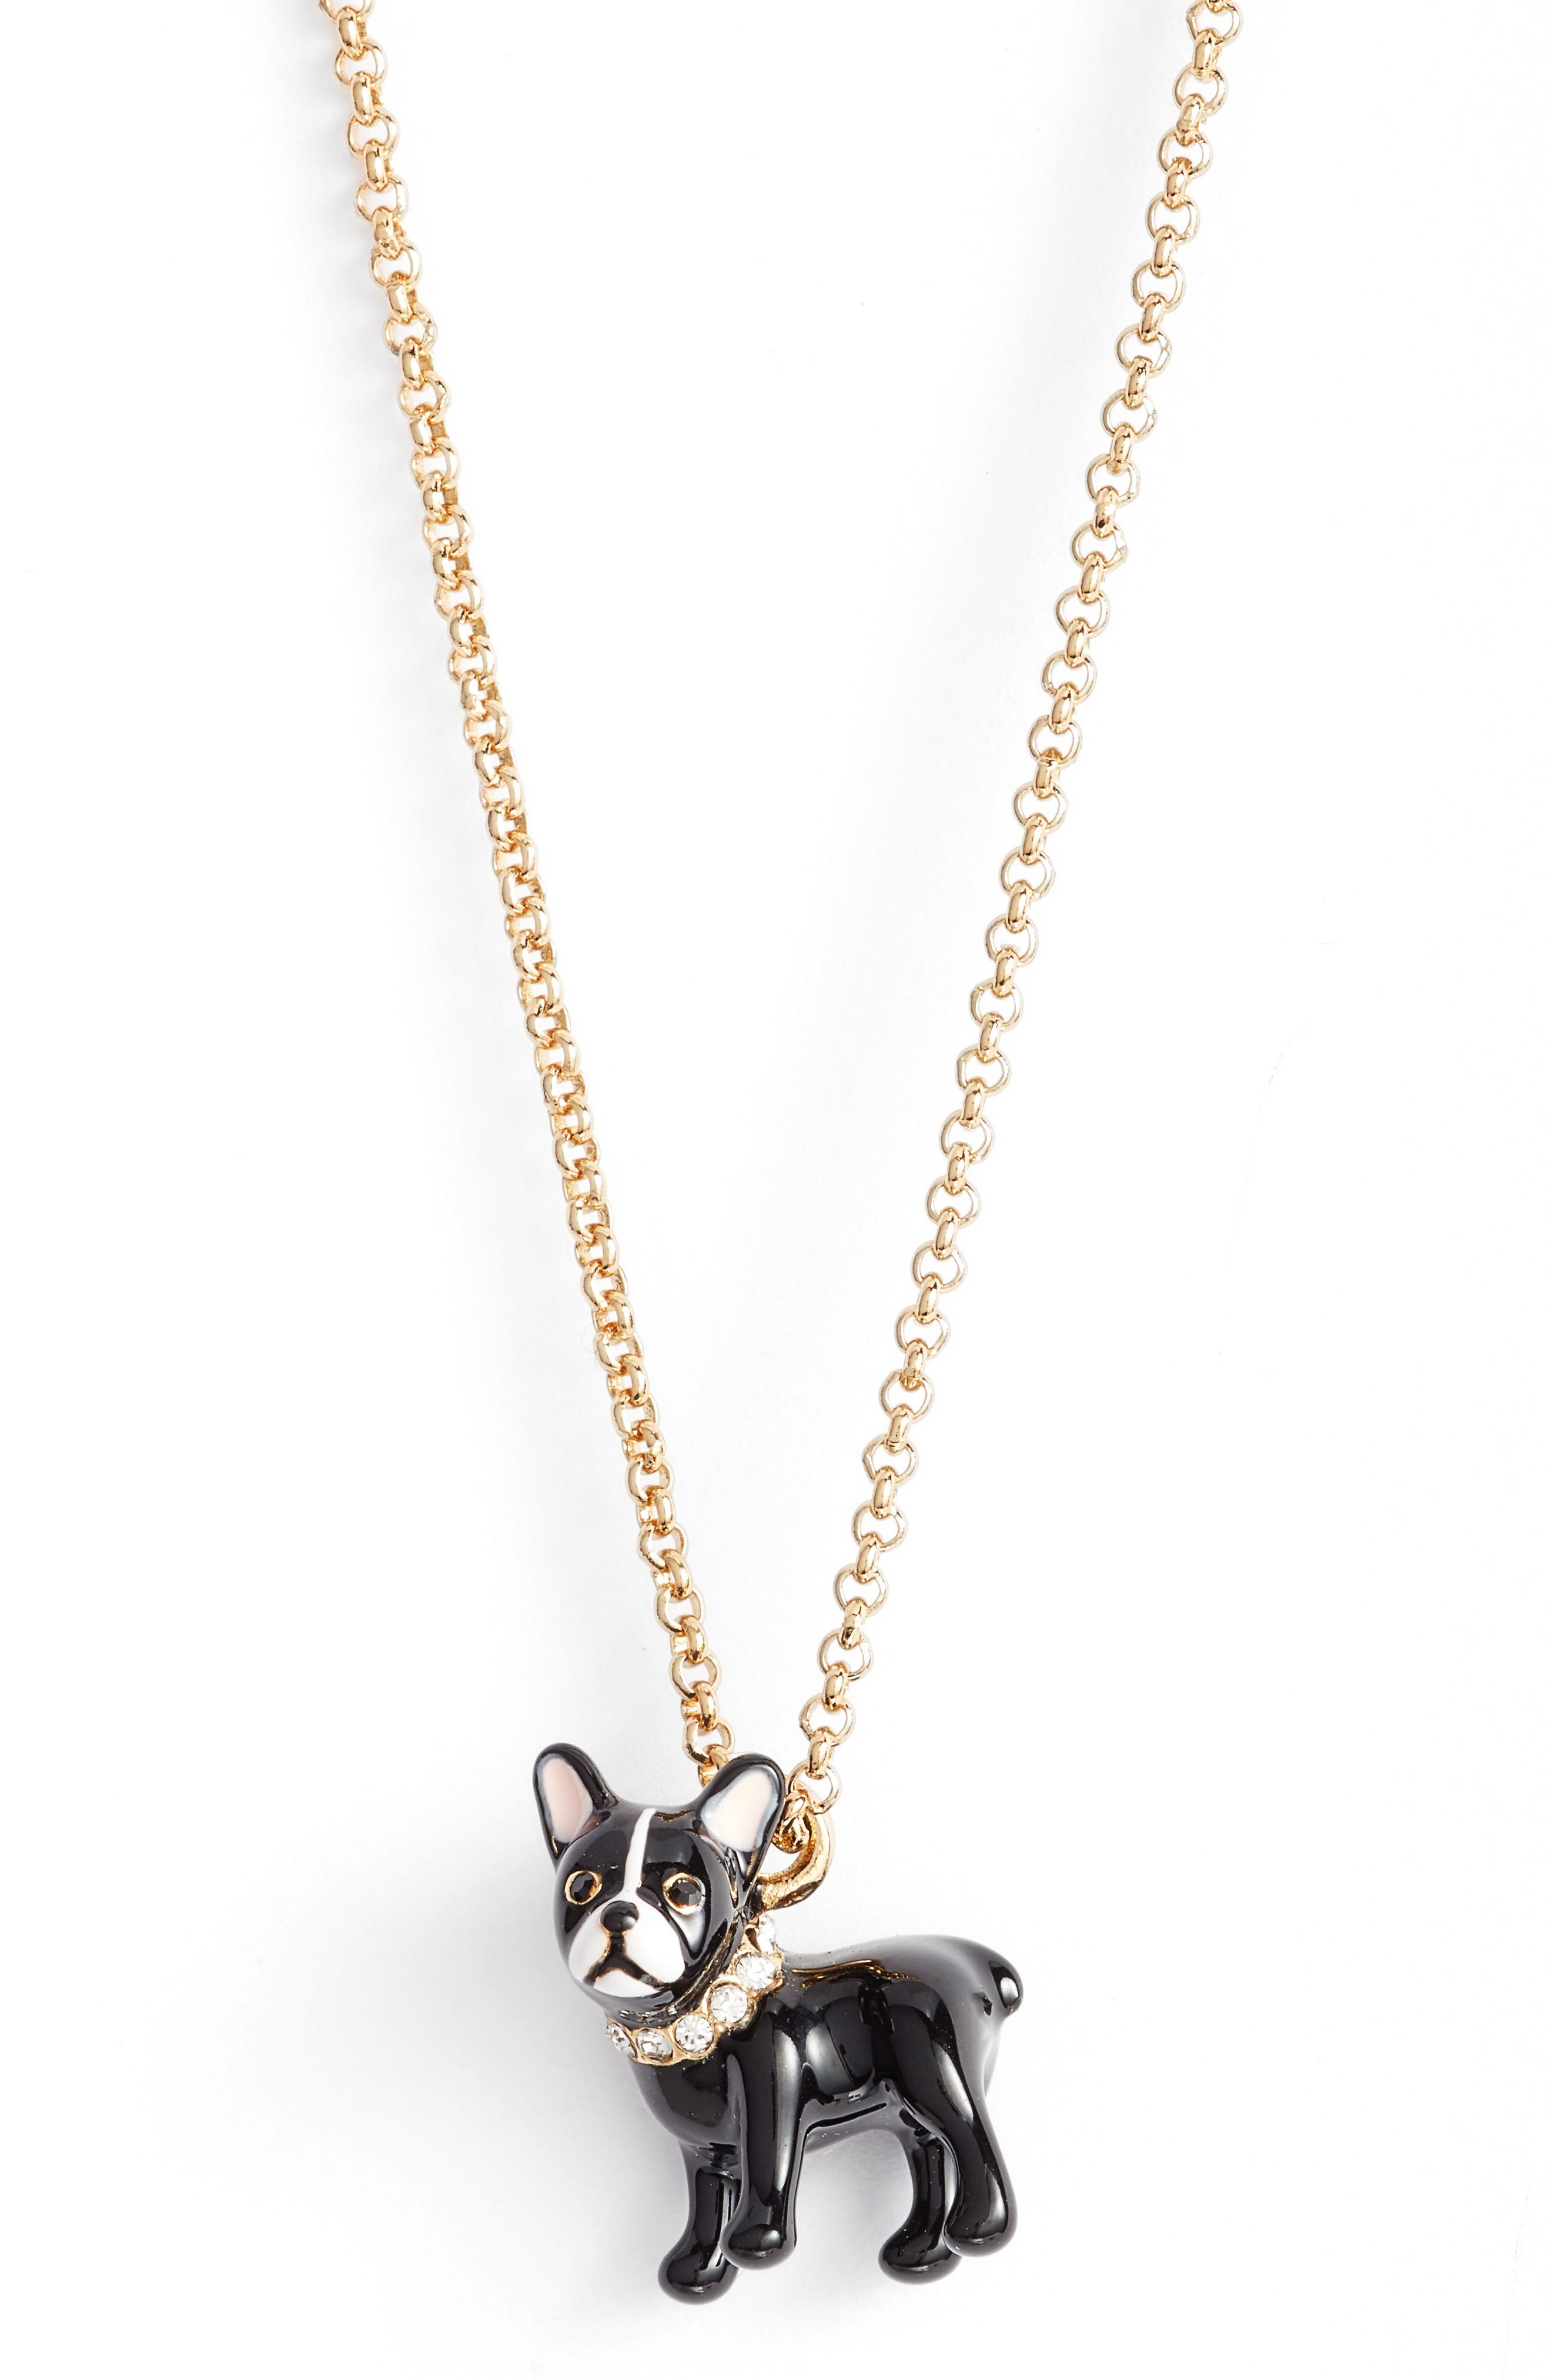 ma cherie antoine dog pendant necklace,                             Main thumbnail 1, color,                             710